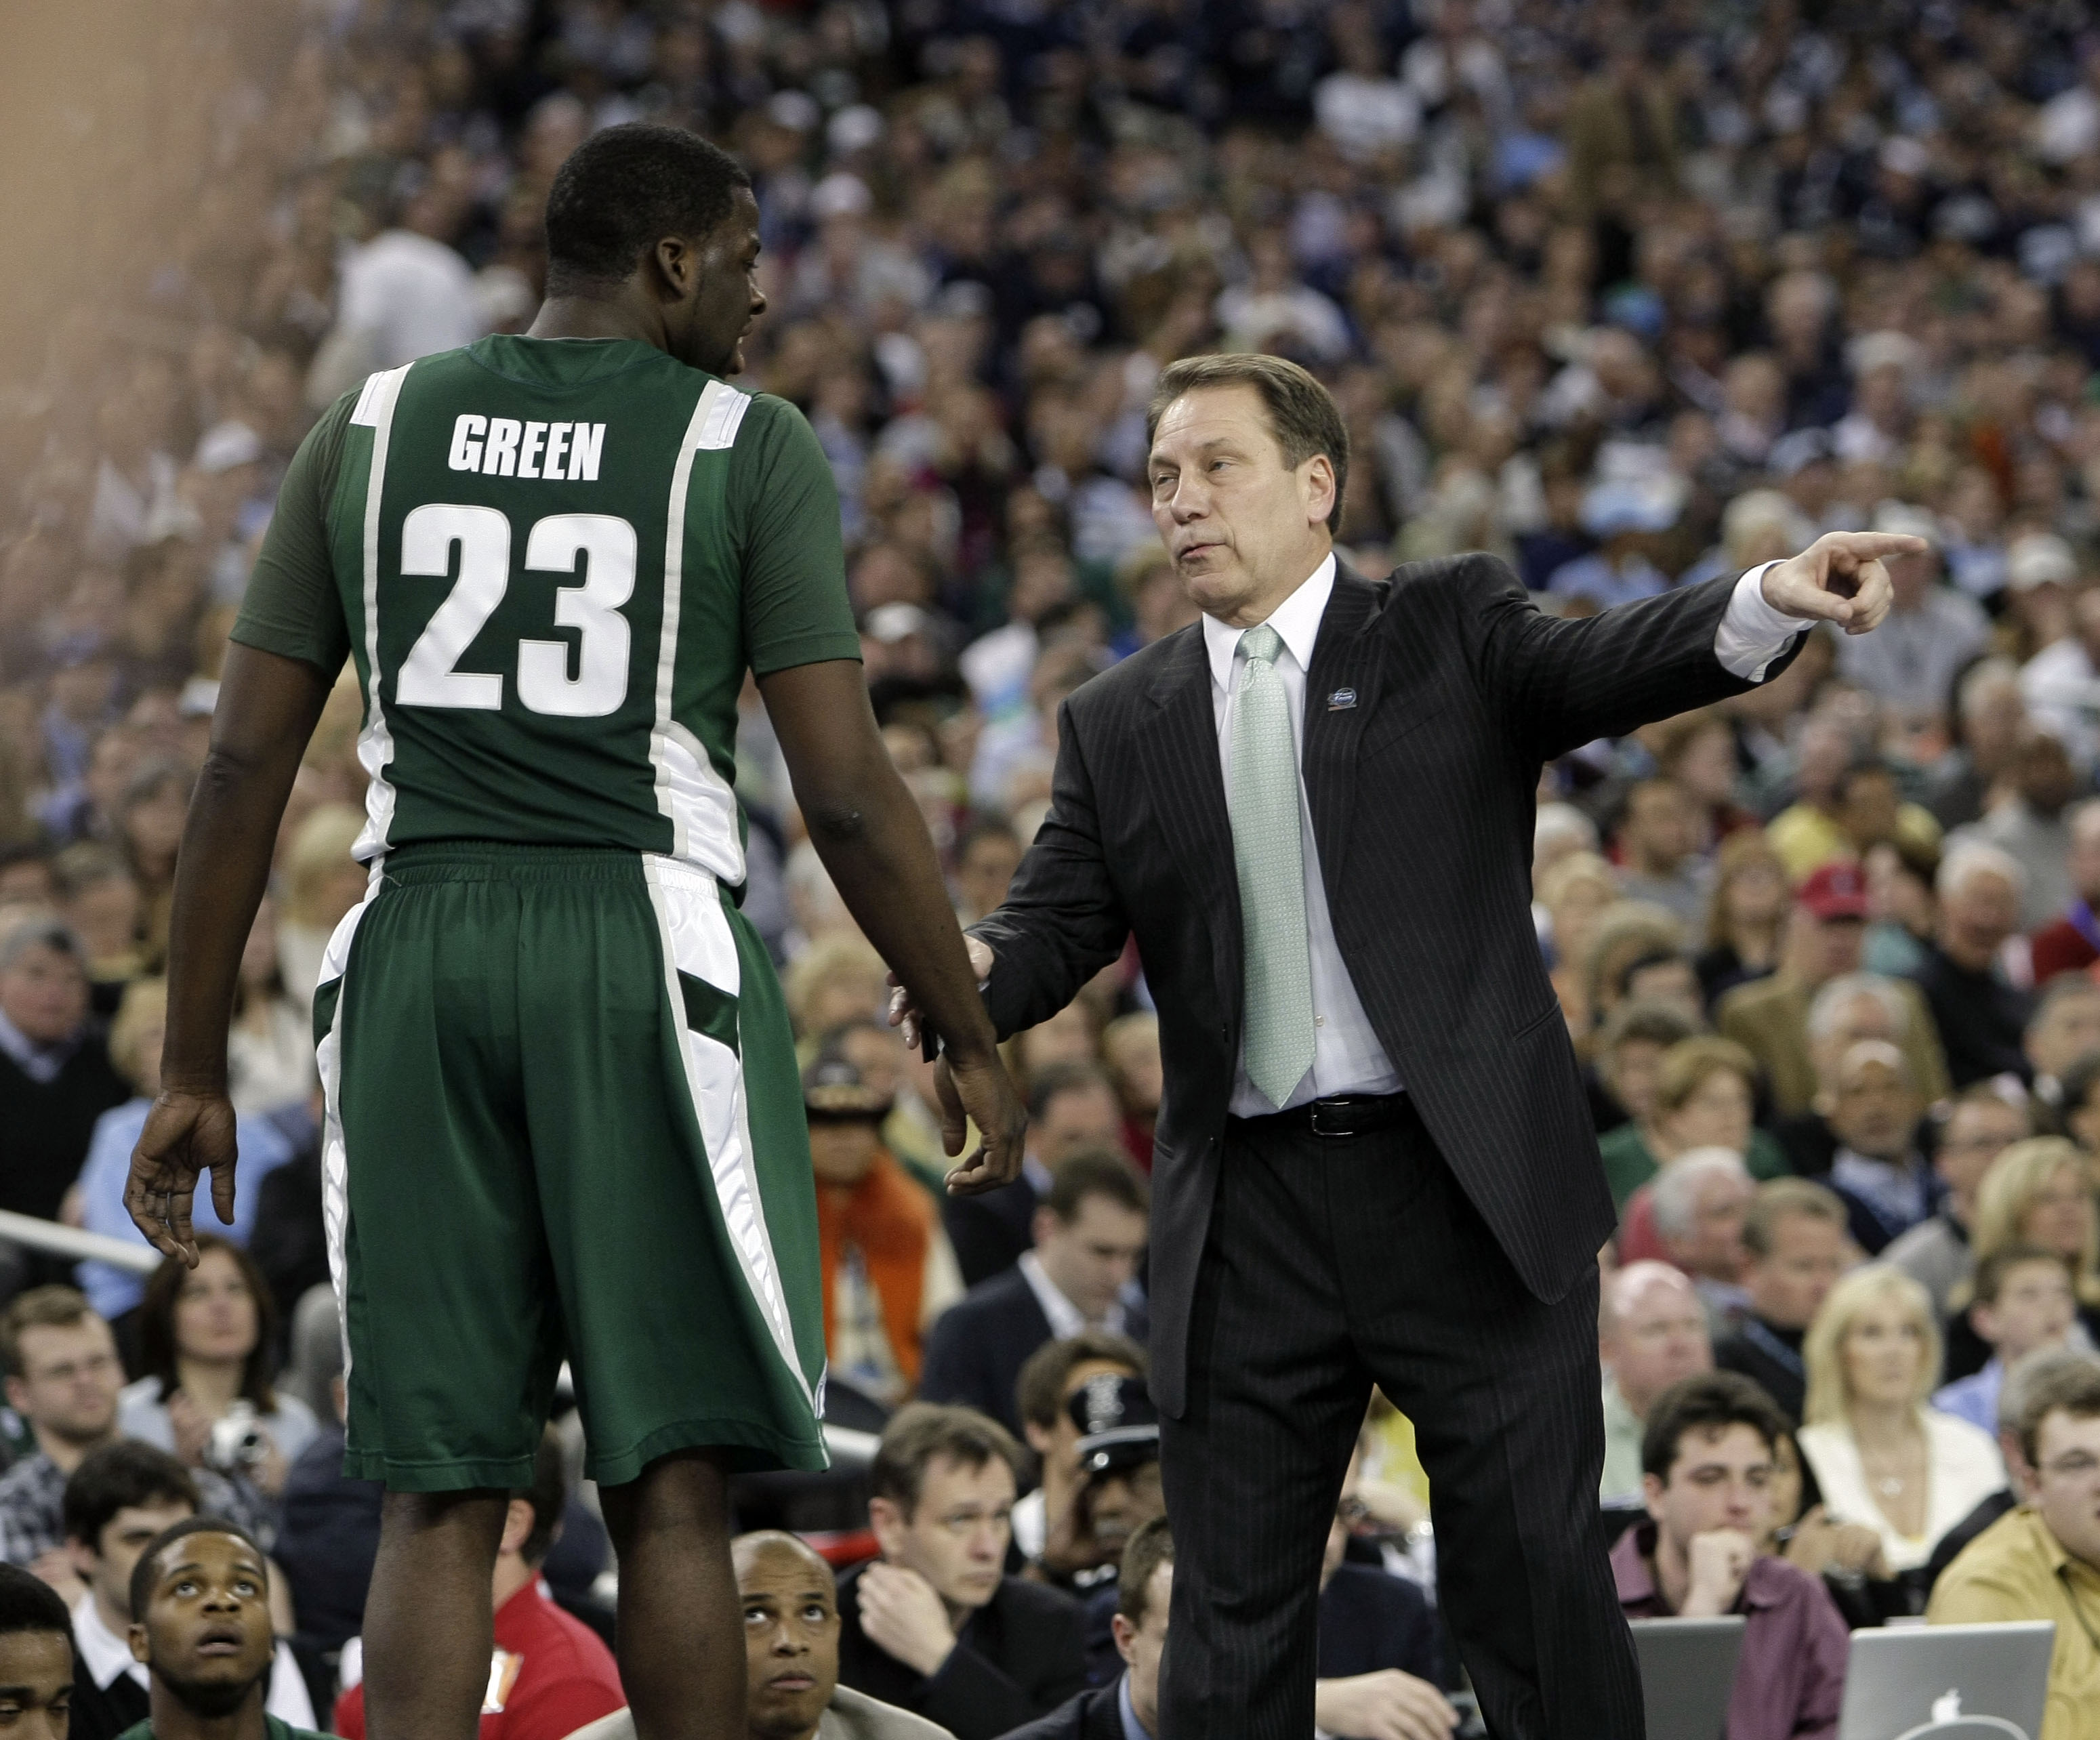 Michigan State head coach Tom Izzo, right, gives instructions to forward Draymond Green during the first half against Connecticut in a Final Four game at Ford Field at Ford Field in Detroit, Michigan, Saturday, April 4, 2009.